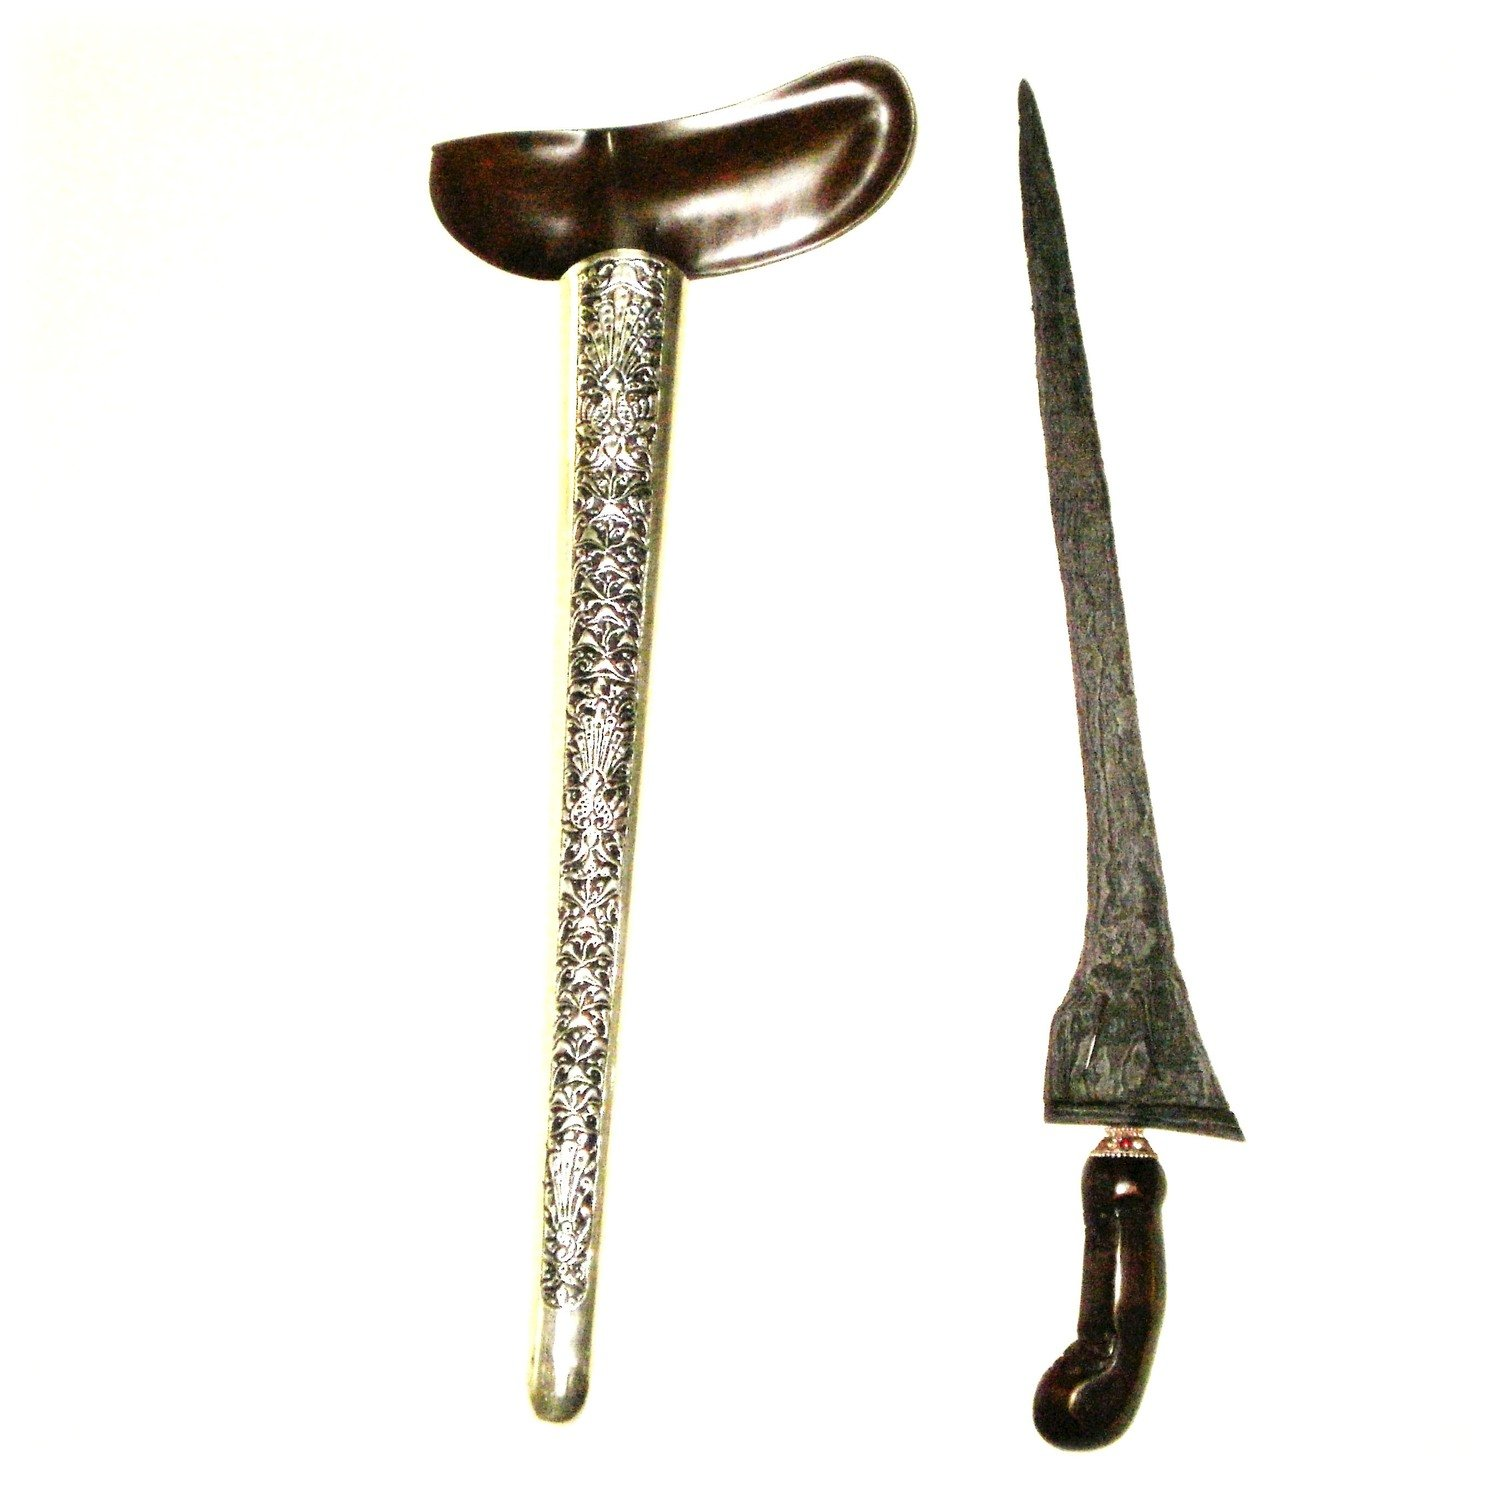 Keris Mahesa Lajer with Pamor Wos Wutah - A Traditional Javanese Pusaka from the 16th Century